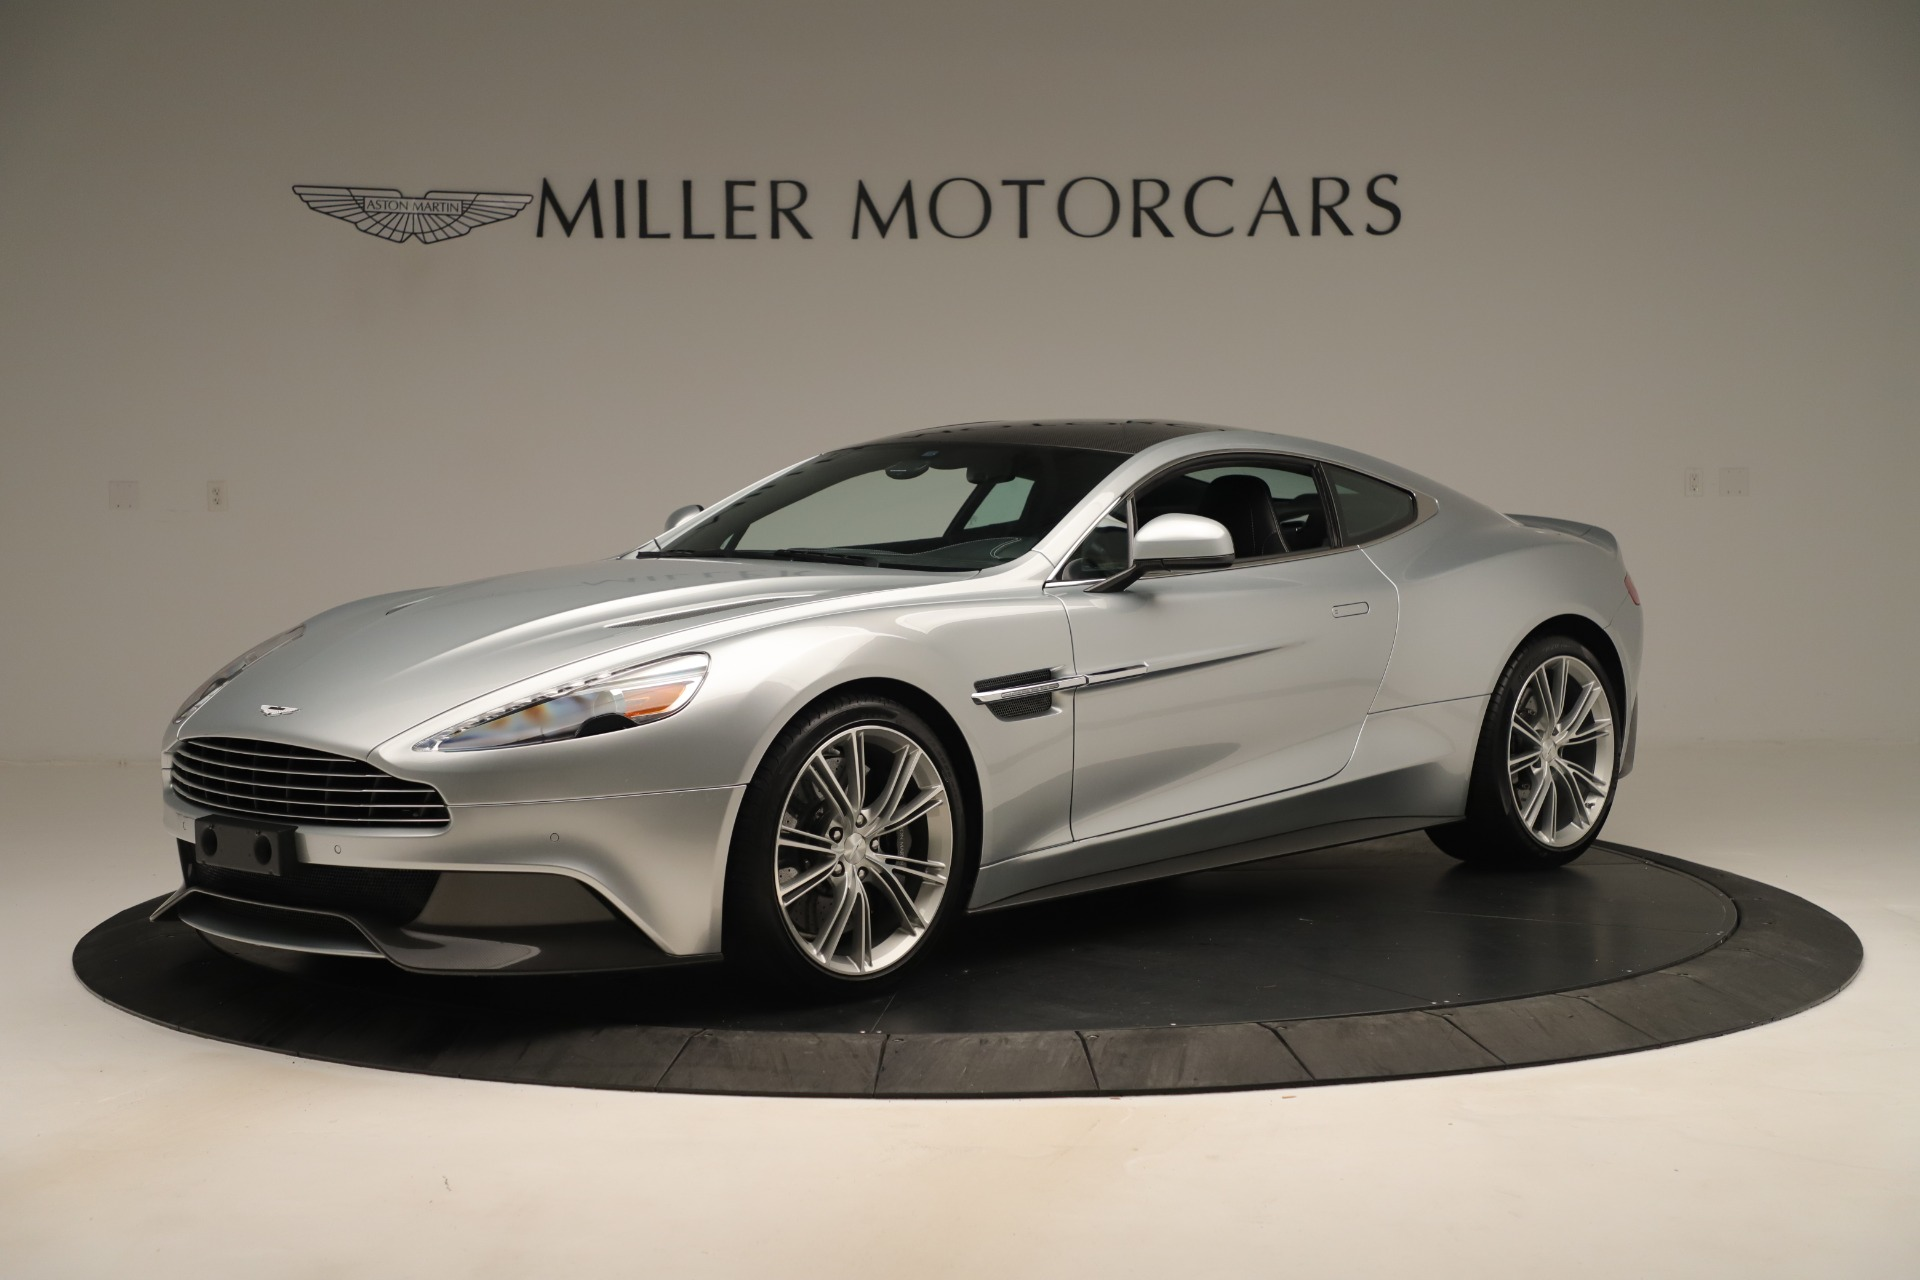 Used 2014 Aston Martin Vanquish Coupe for sale $116,900 at Bugatti of Greenwich in Greenwich CT 06830 1